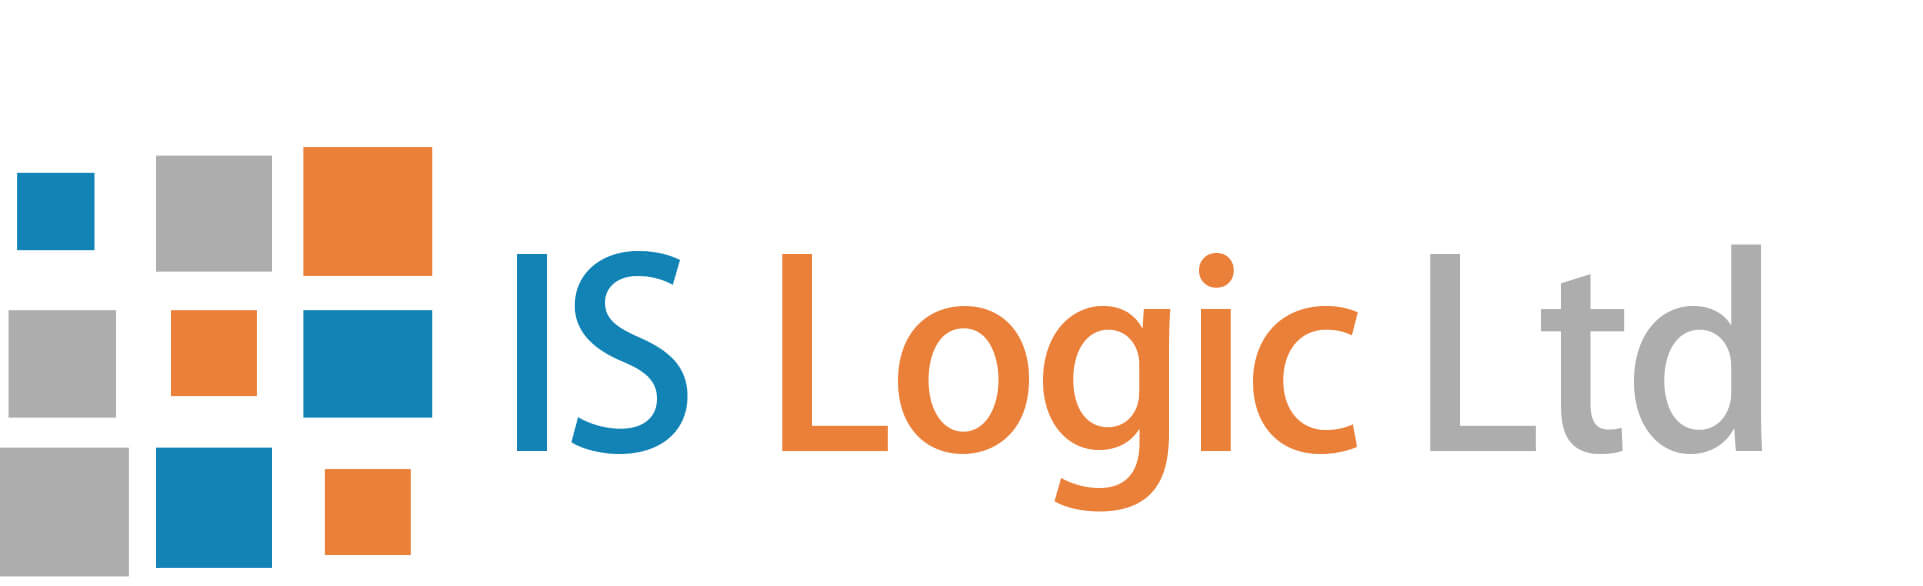 IS Logic Ltd